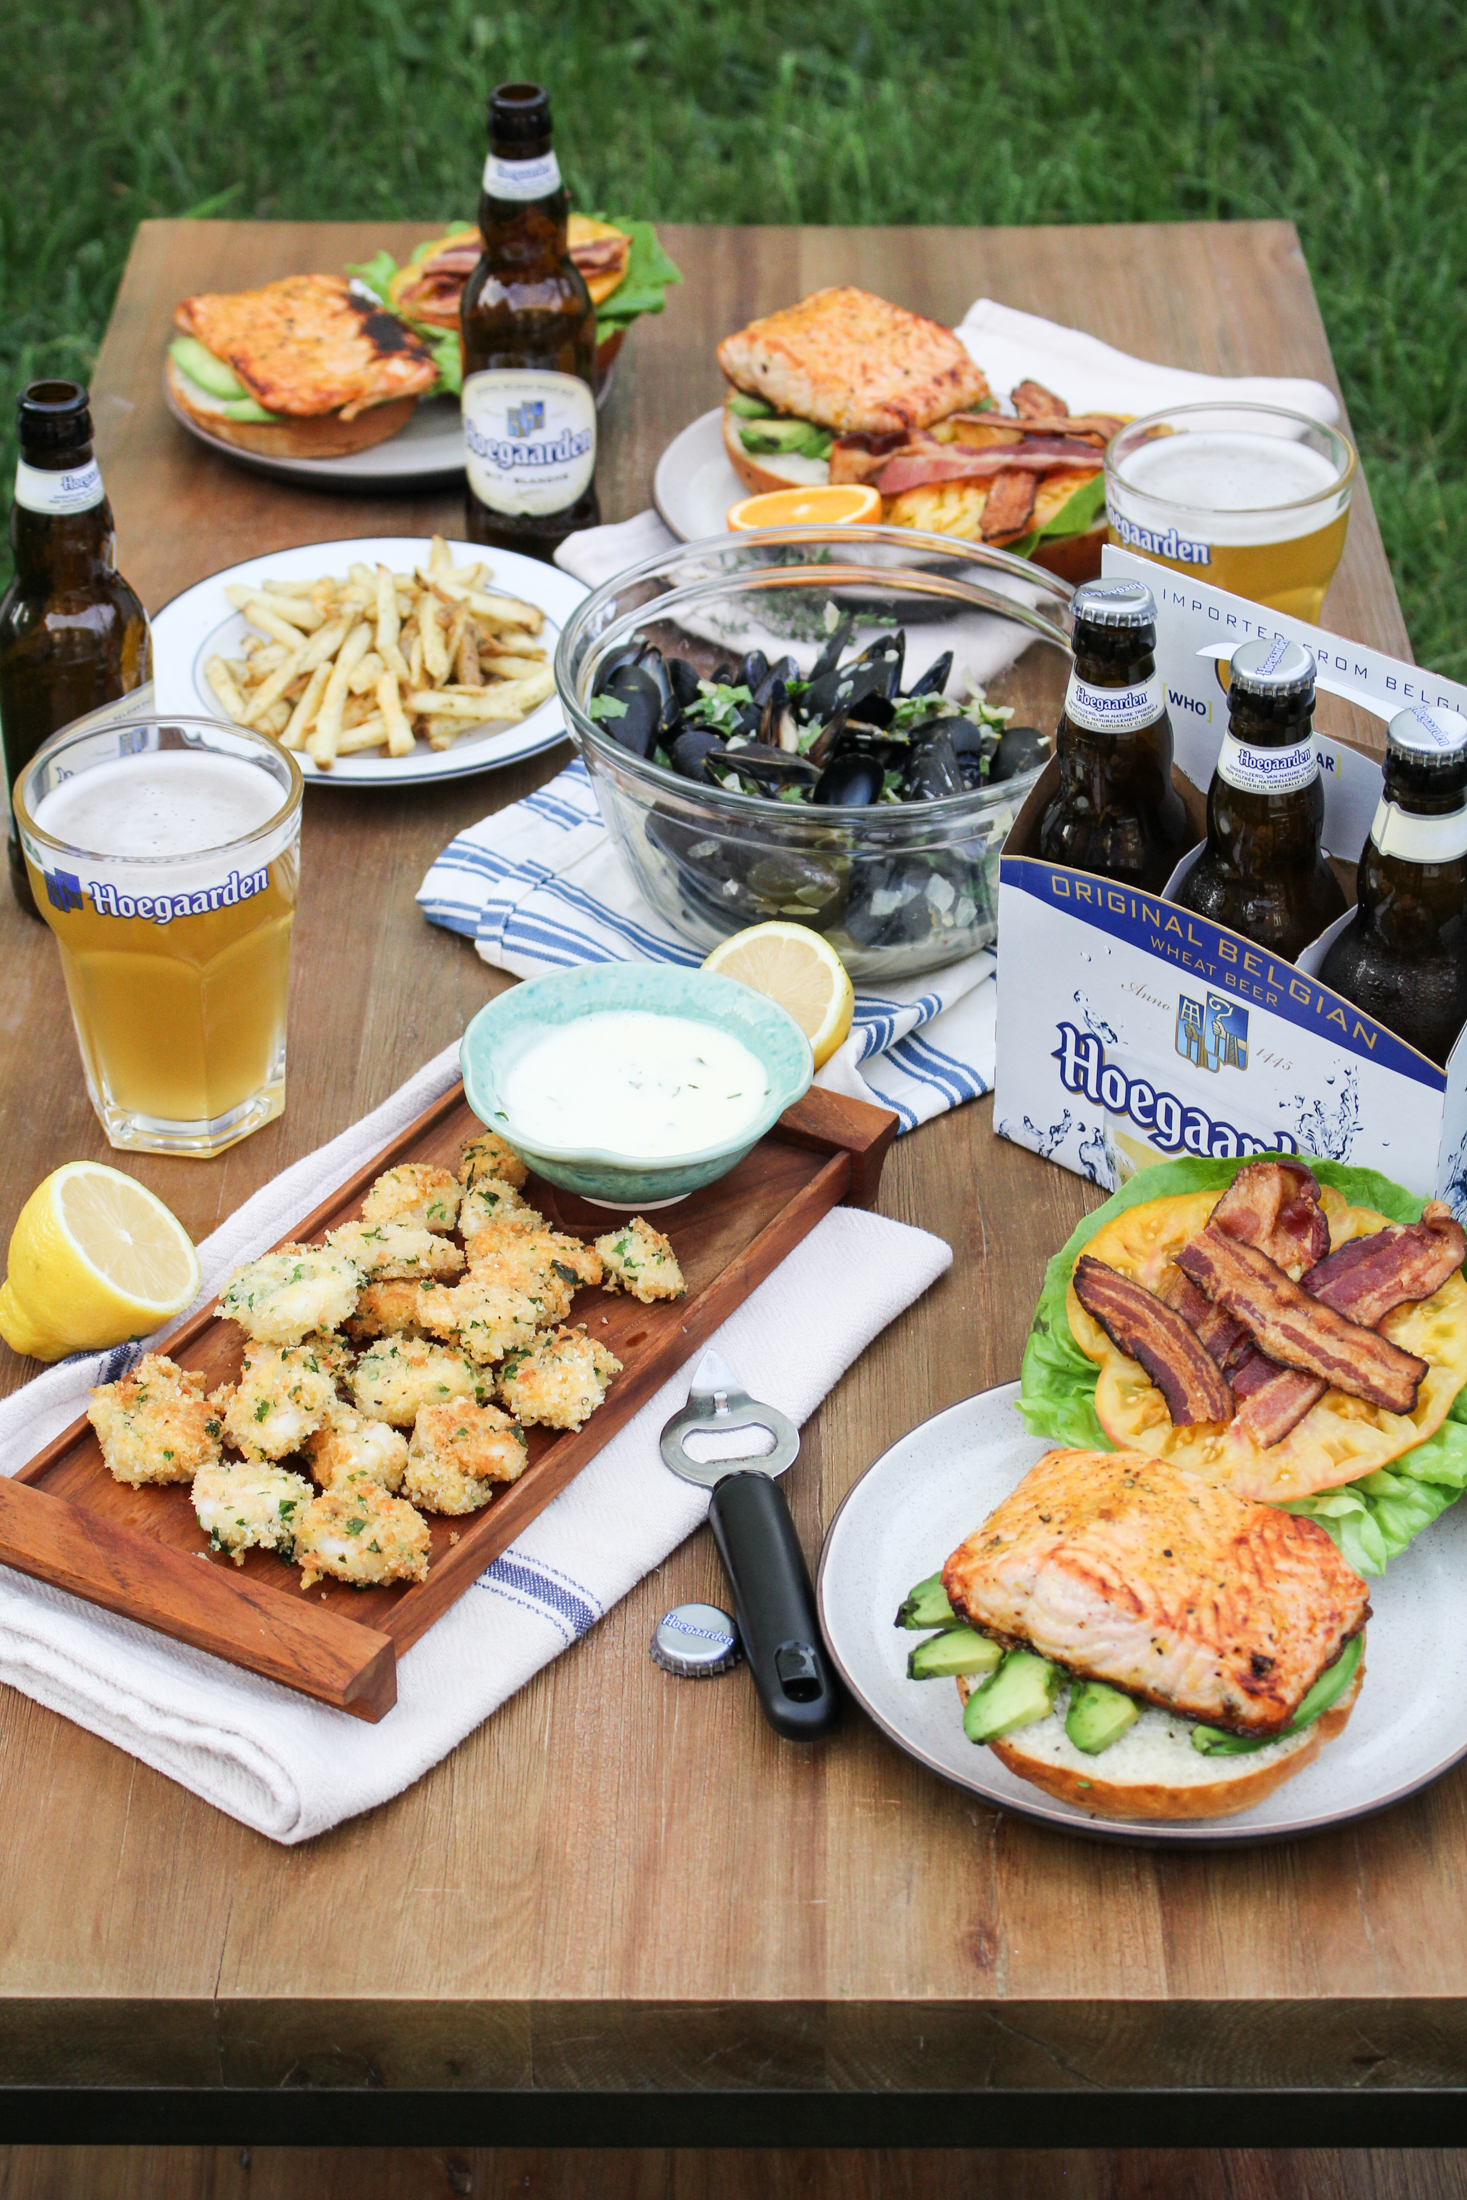 Hoegaarden Seafood Dinner: Popcorn Shrimp, Ale-Steamed Mussels, and Salmon B.L.A.T.s